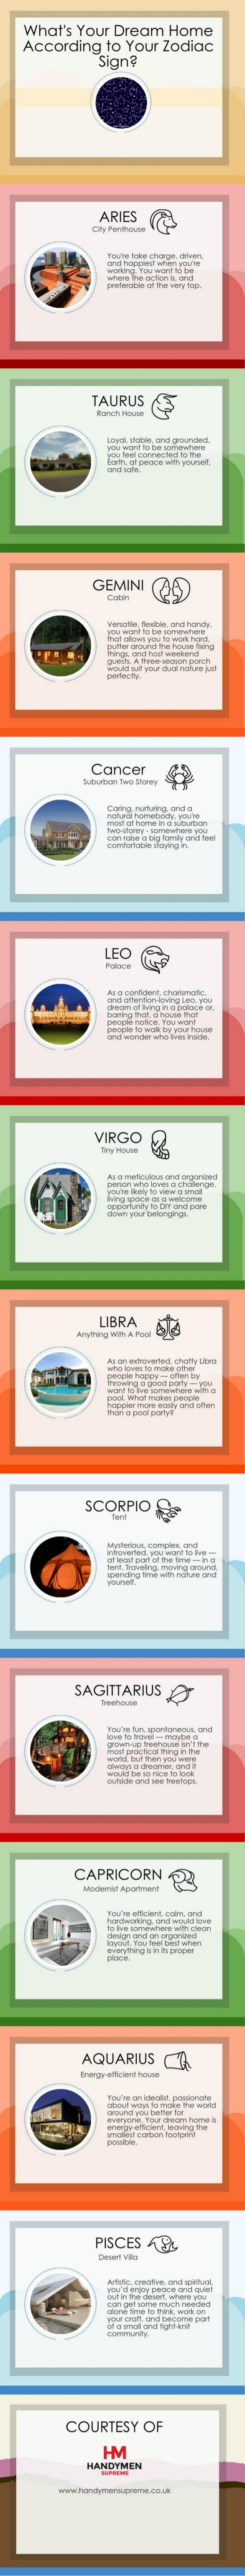 What's Your Dream House According to Your Zodiac Sign?